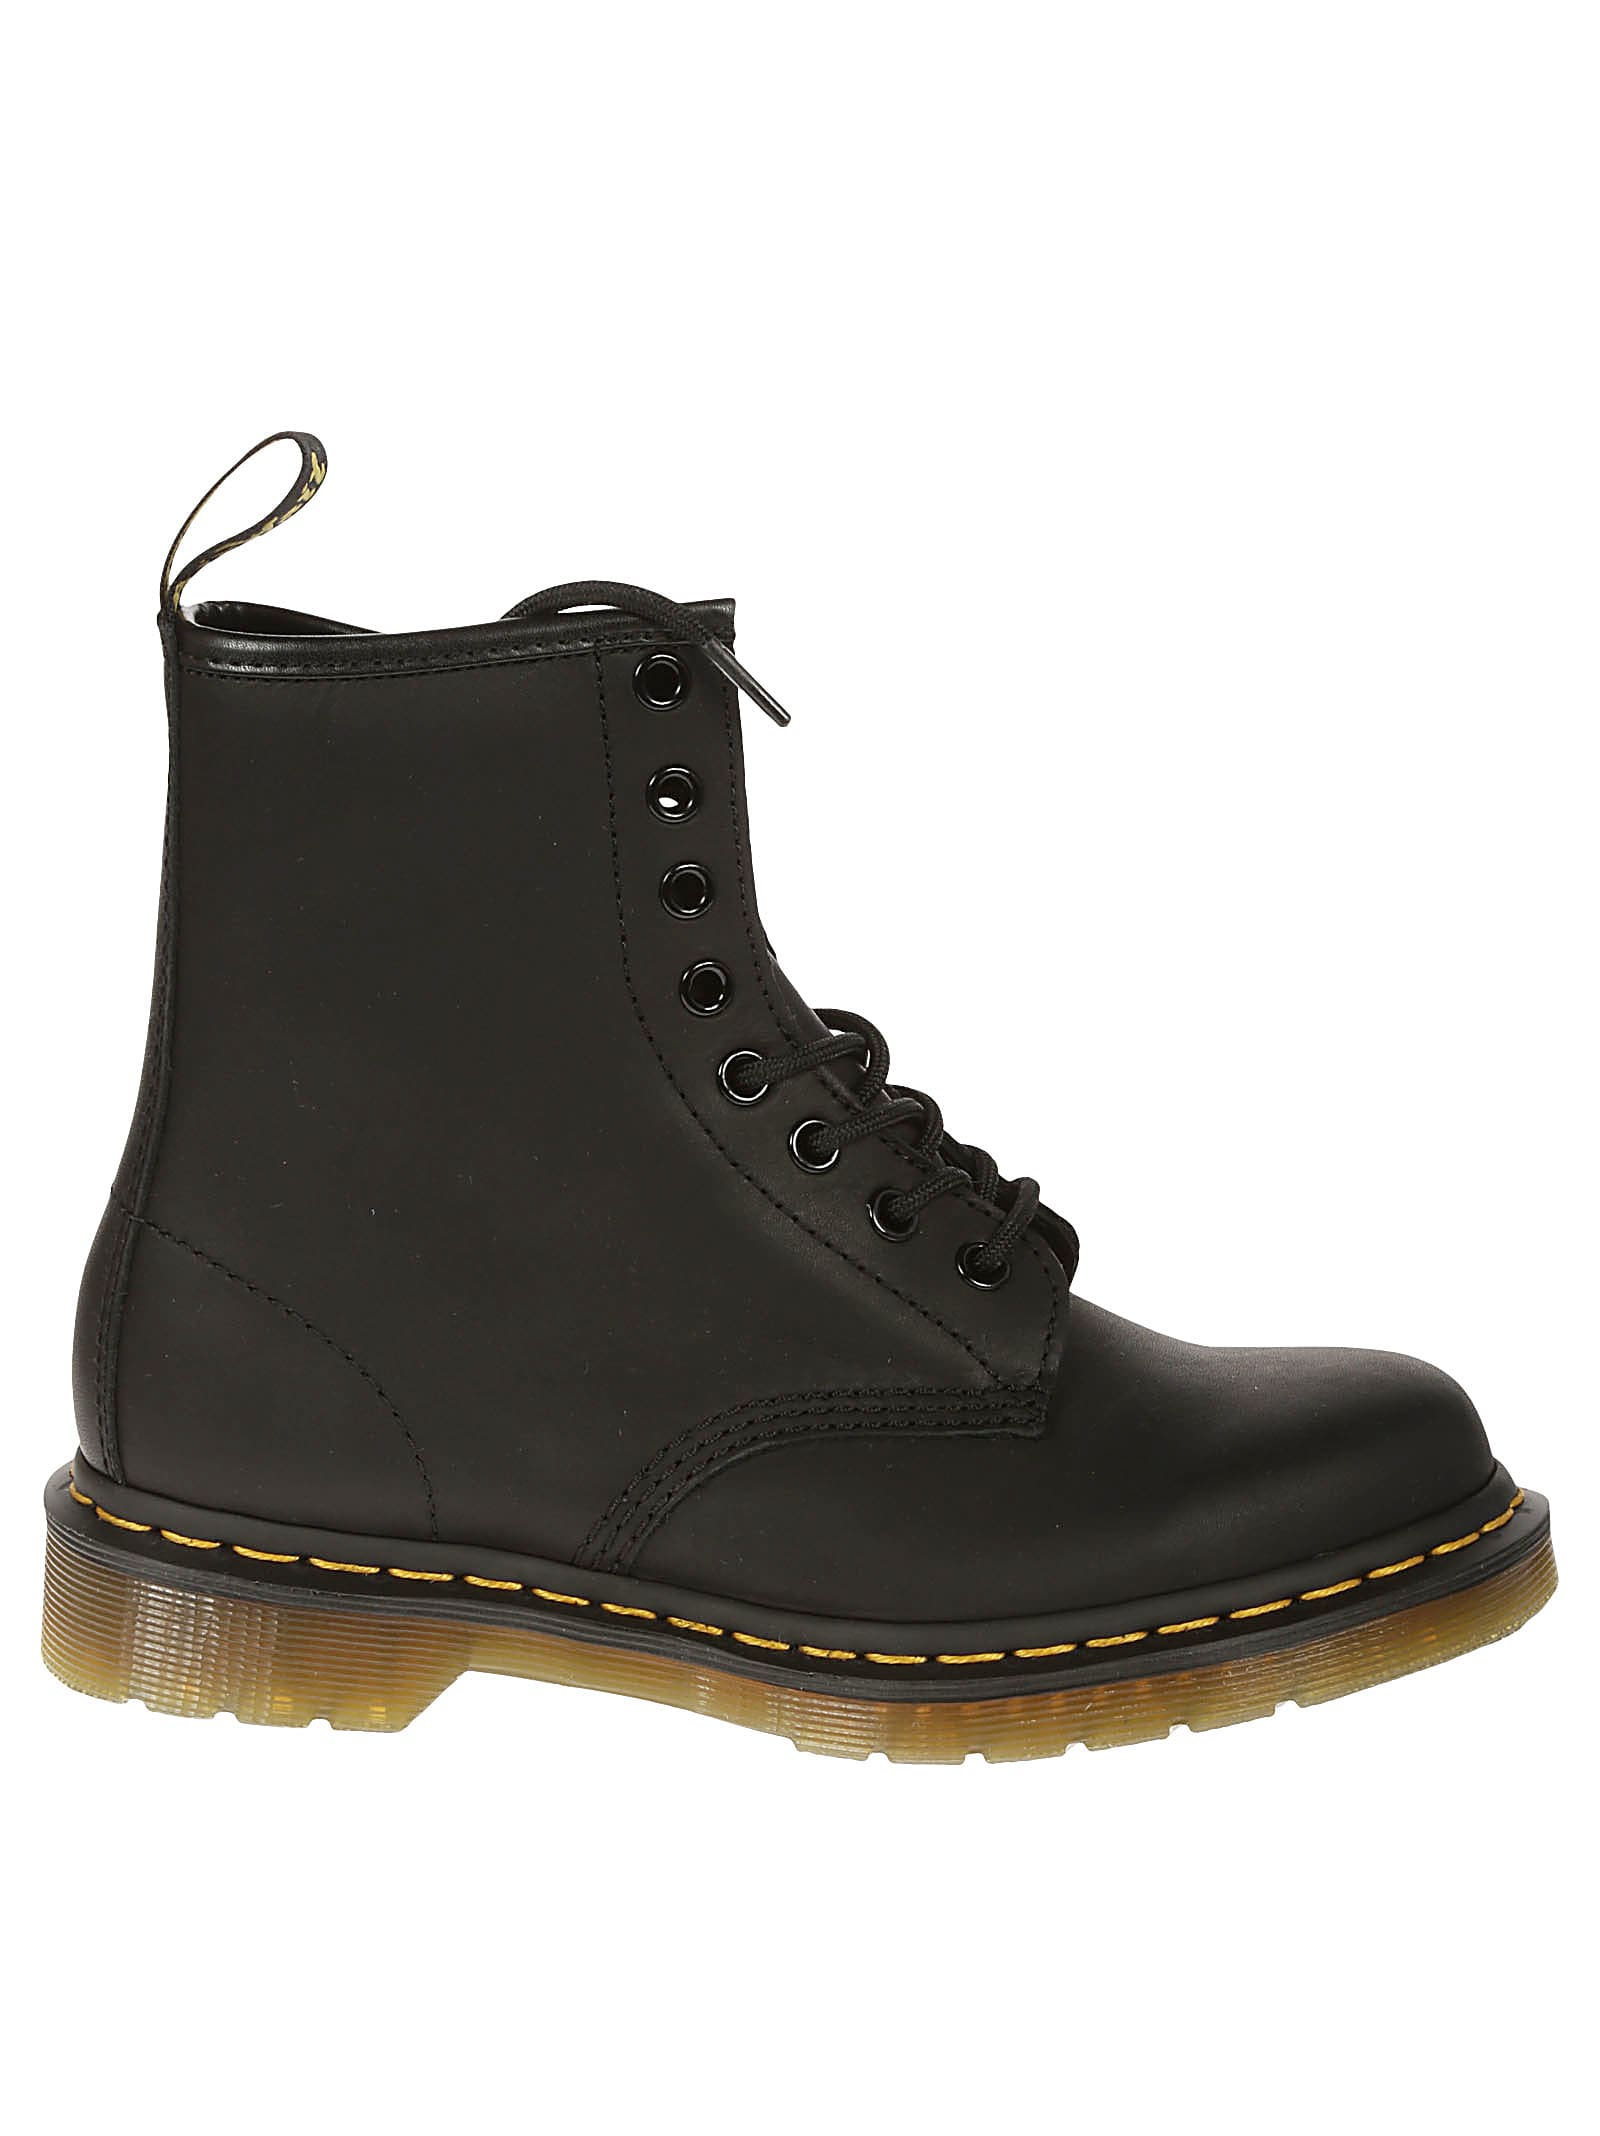 Buy Dr. Martens Greasy Boots online, shop Dr. Martens shoes with free shipping